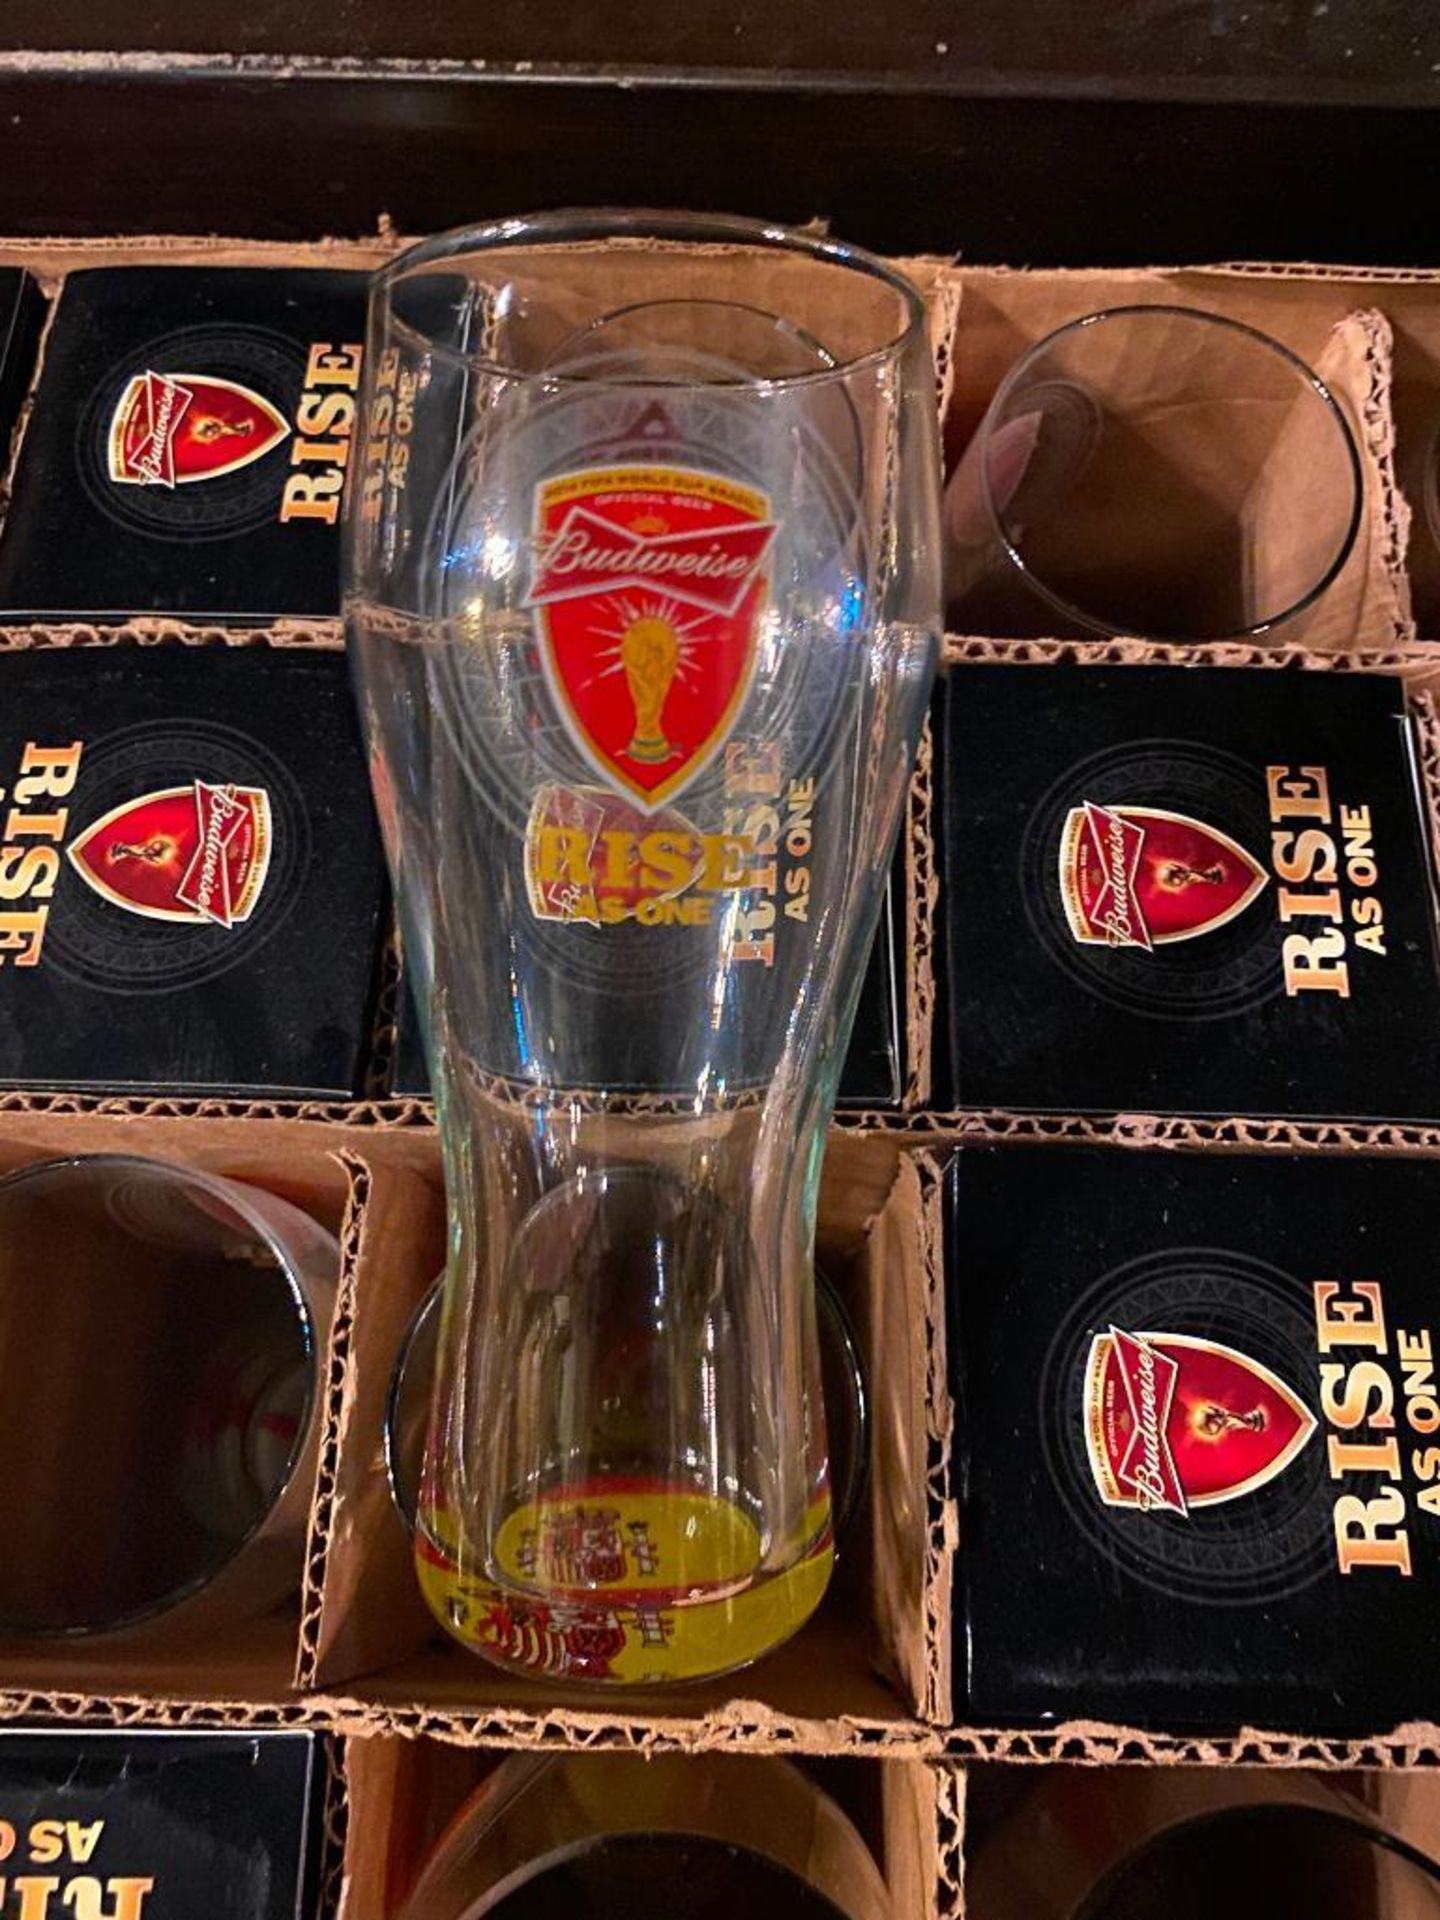 "BOX OF BUDWEISER ""RISE AS ONE"" COLLECTOR GLASSES - Image 2 of 2"